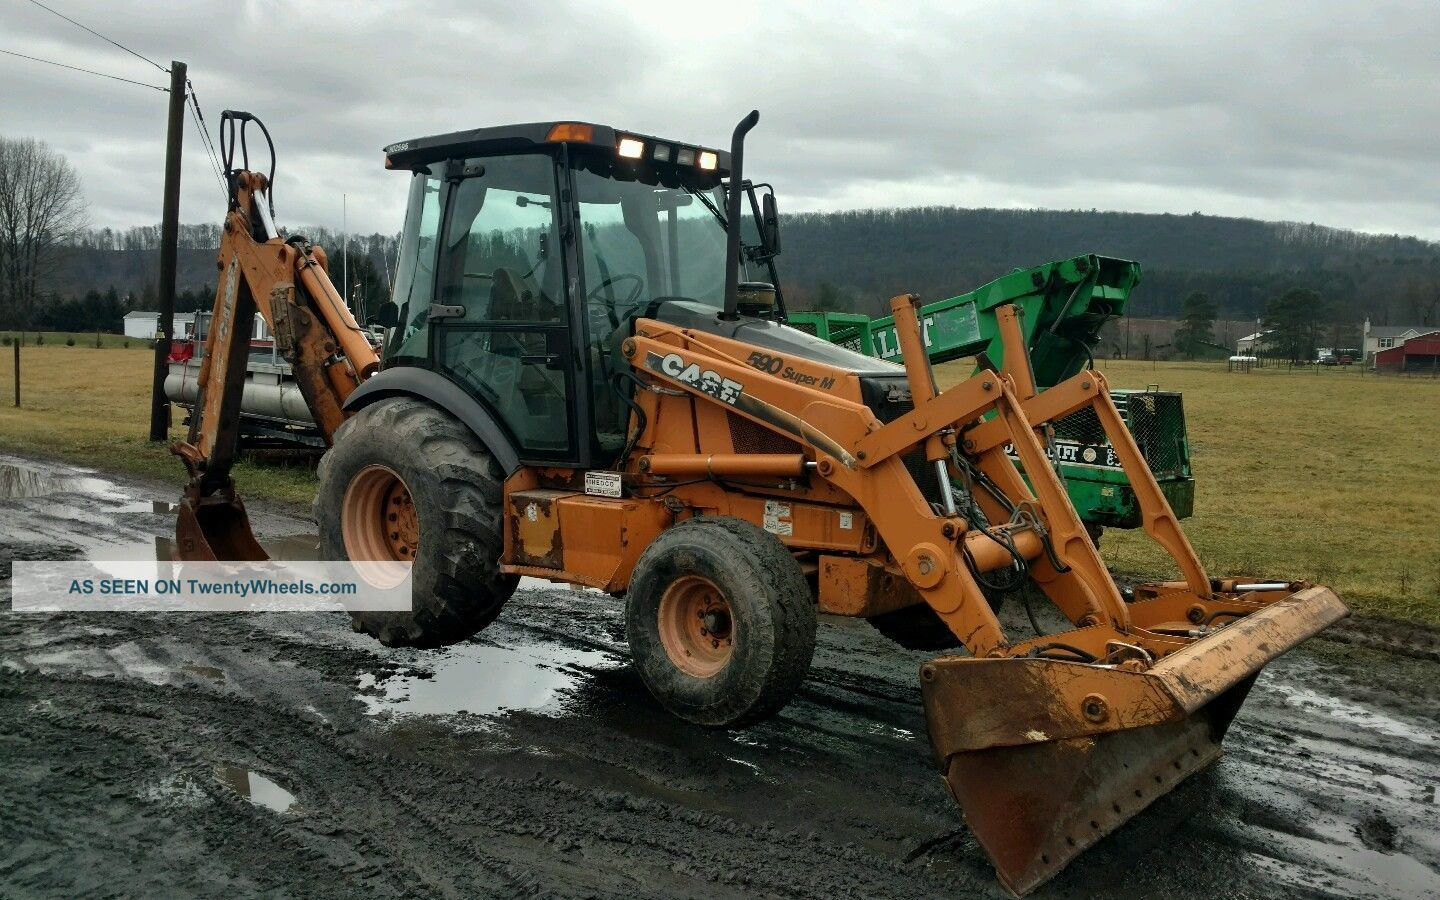 Case Backhoe 590 M Backhoe Loaders photo